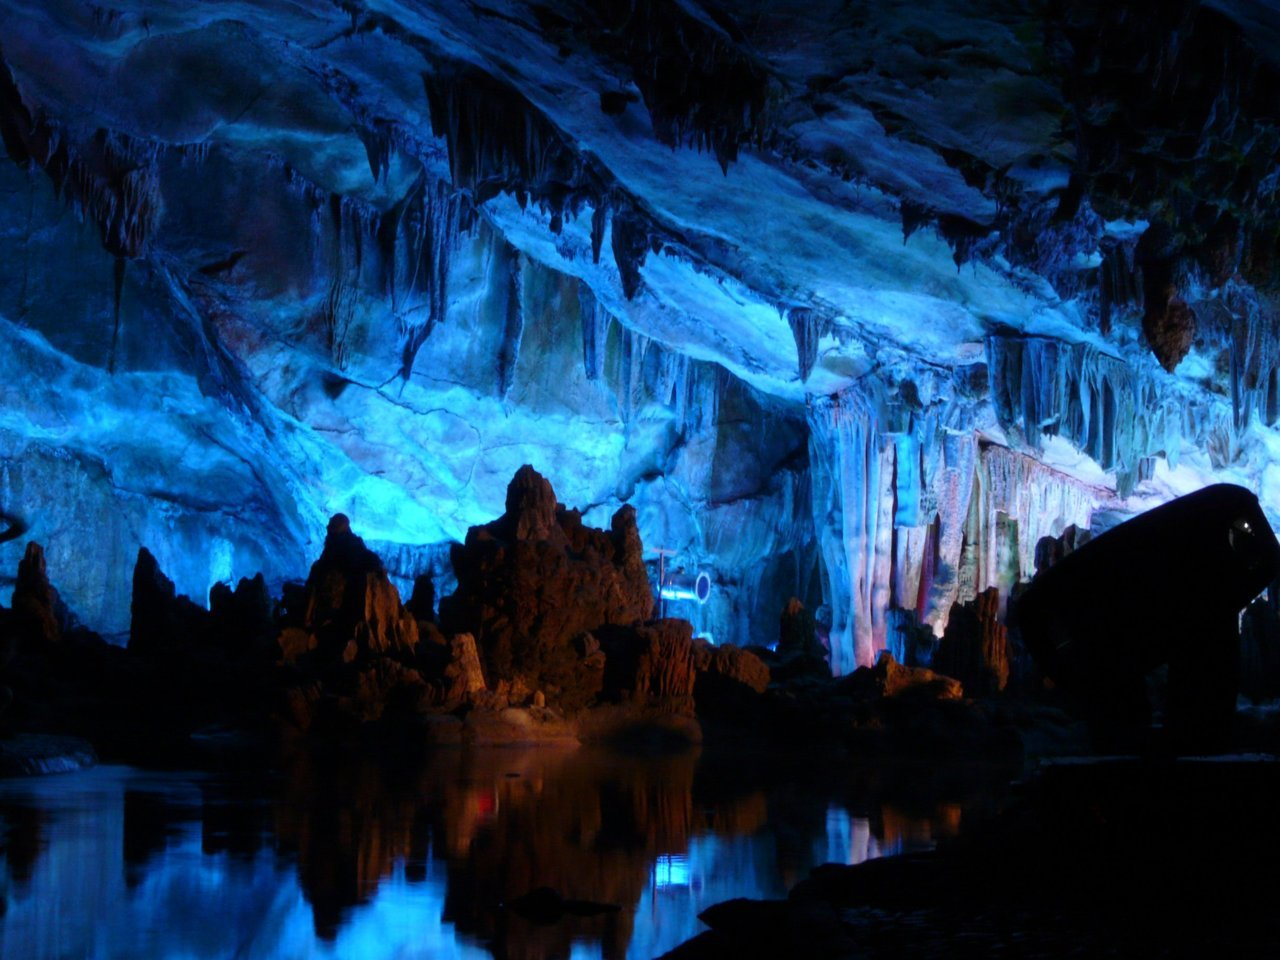 quantumaniac:  Reed Flute Cave The famous Reed Flute Cave is a landmark and tourist attraction in Guilin, Guangxi, China. The cave itself is over 180 million years old. It is a natural limestone cave with multicolored lighting and has been one of Guilin's most interesting attractions for over 1200 years. The cave got its name from the type of reed growing outside, which can be made into melodious flutes. Reed Flute Cave is filled with a large number of stalactites, stalagmites and rock formations in weird and wonderful shapes. Inside, there are more than 70 inscriptions written in ink, which can be dated back as far as 792 AD in the Tang Dynasty.